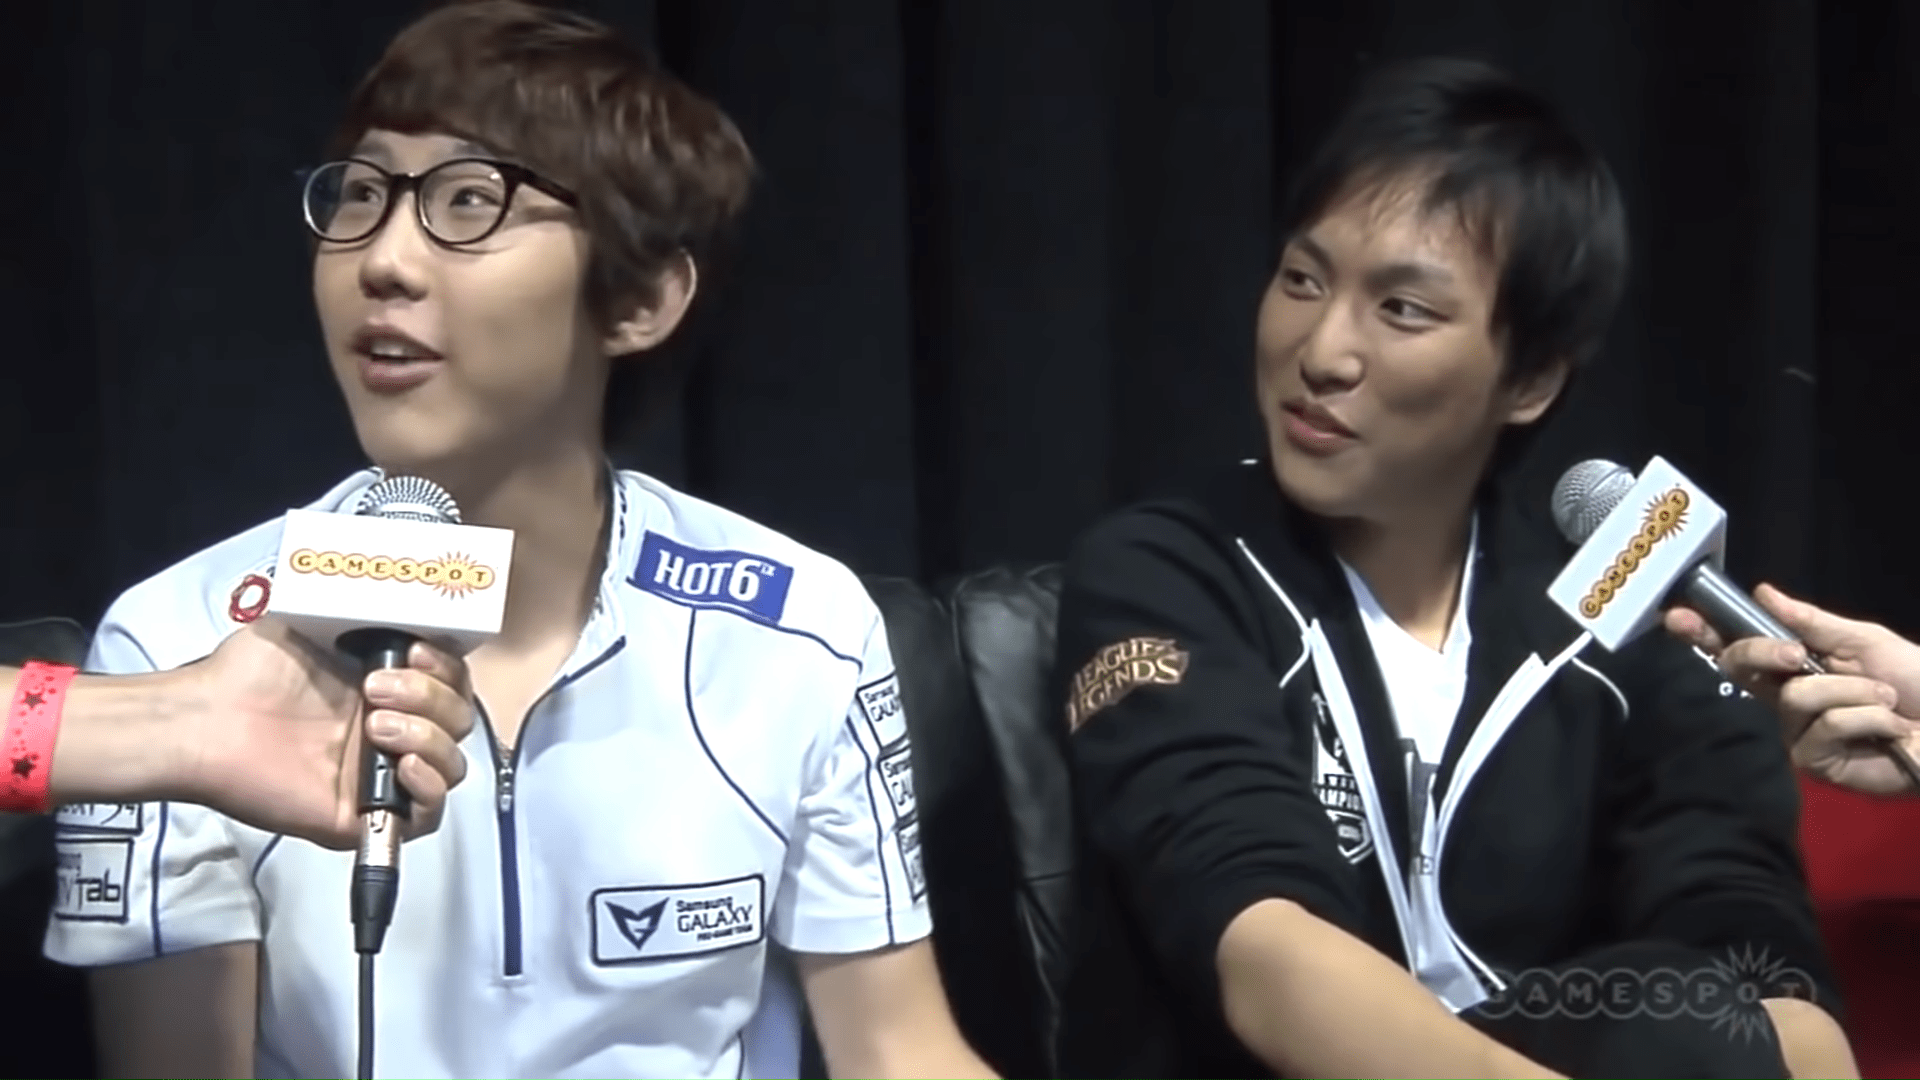 World Champion Gu 'Imp' Seung-Bin Announces Retirement From Competitive League Of Legends